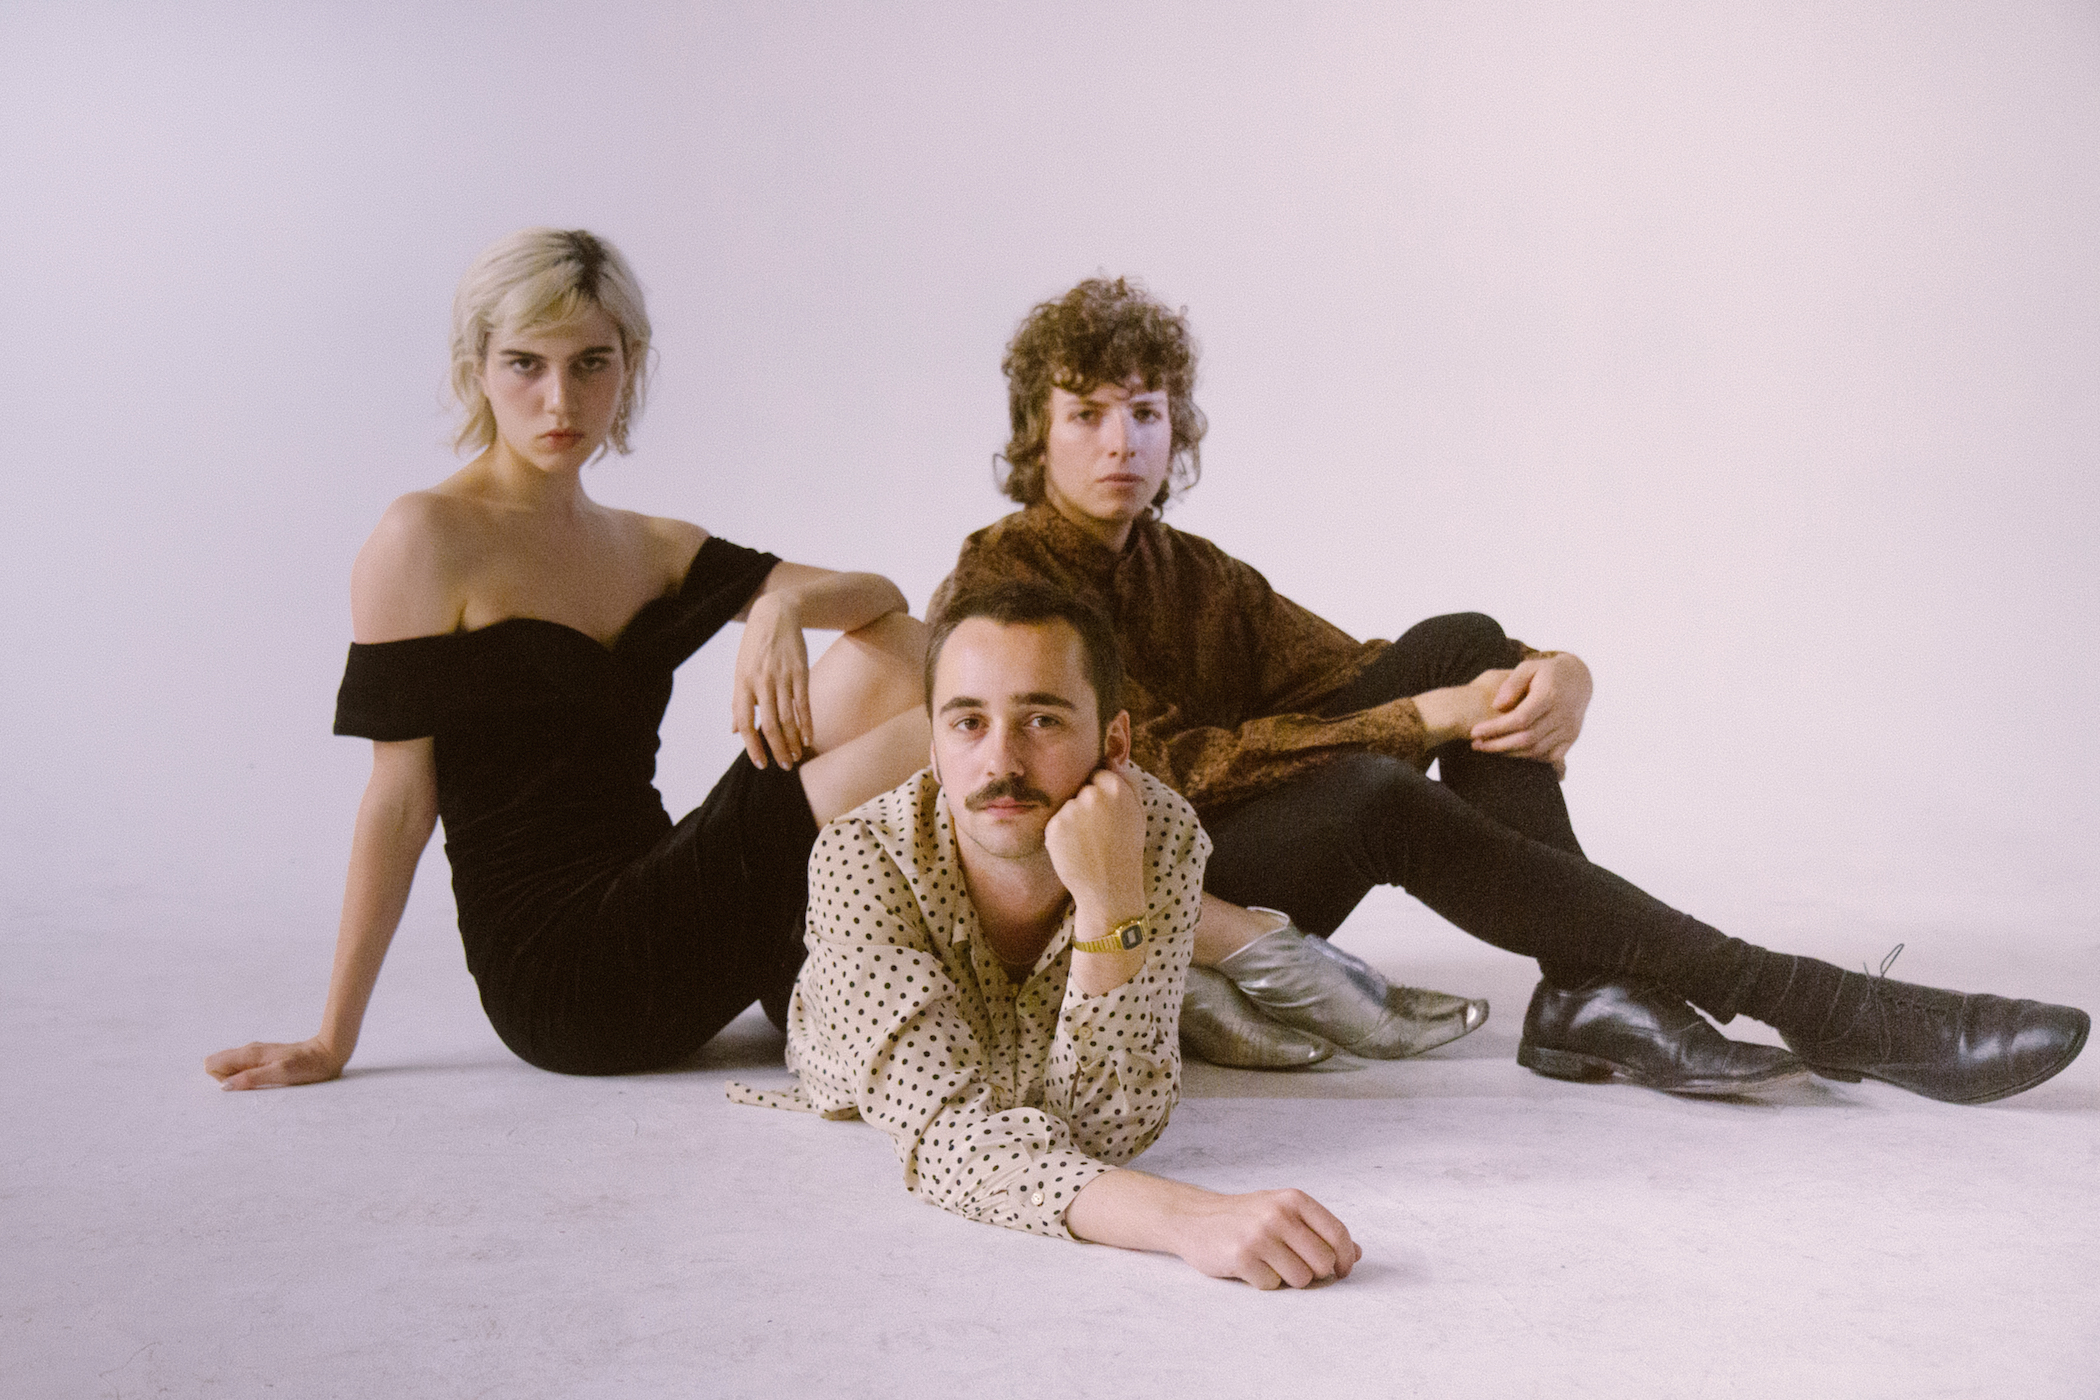 Sunflower Bean's Julia Cumming's interview with Northern Transmissions